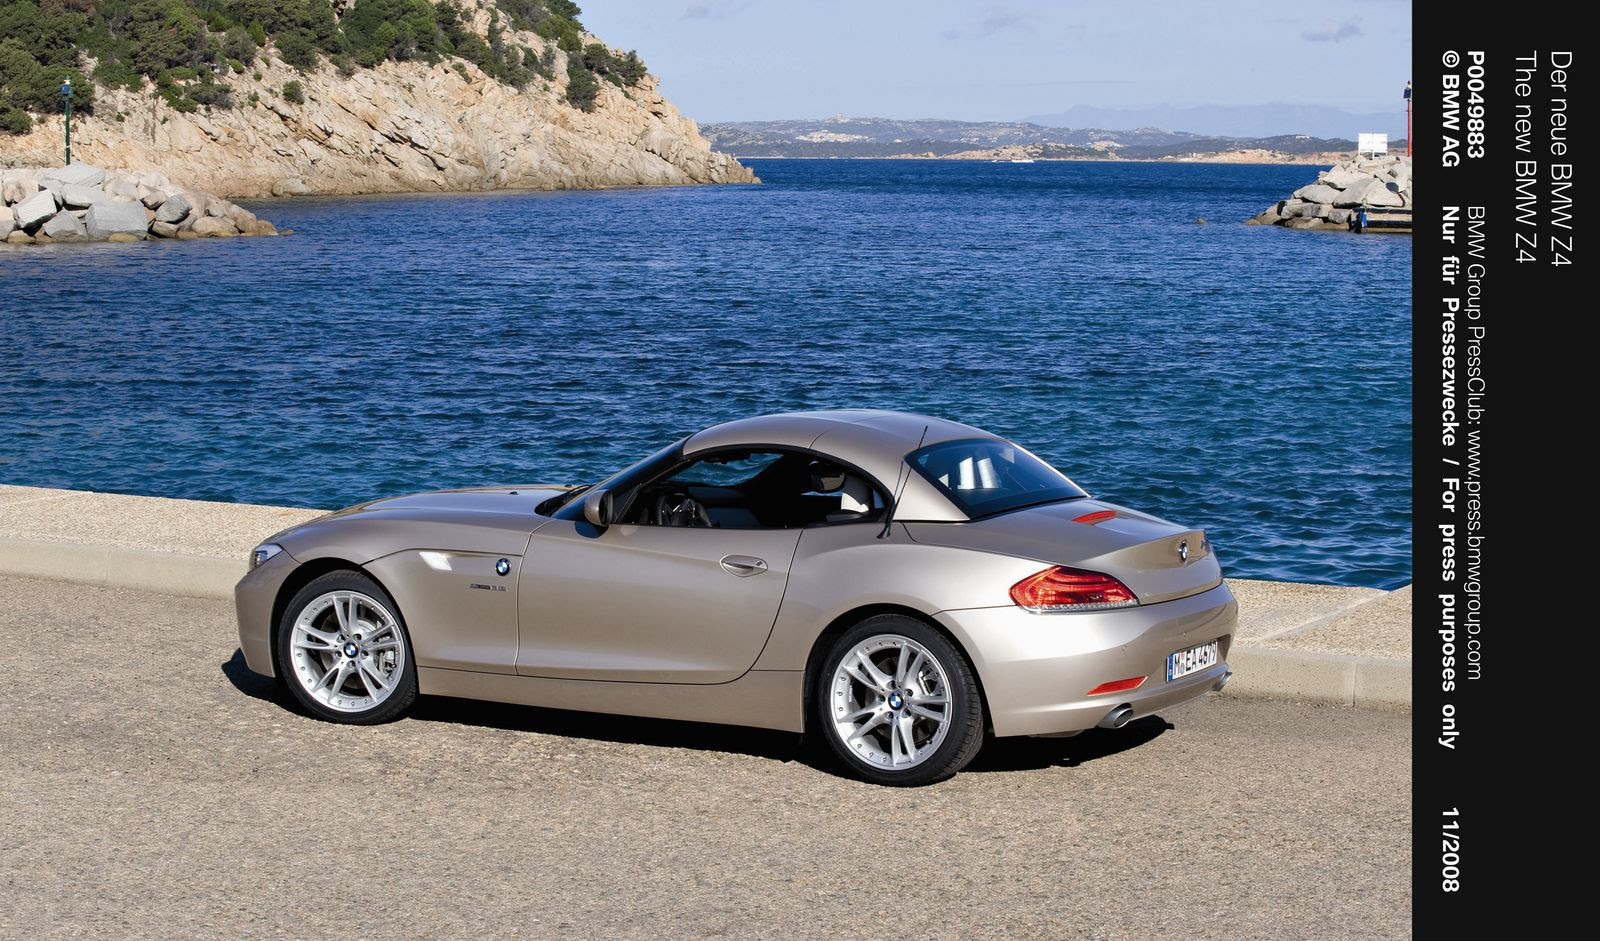 Bmw Z4 M Sdrive 2010 Specificatin And Pictures Gallery